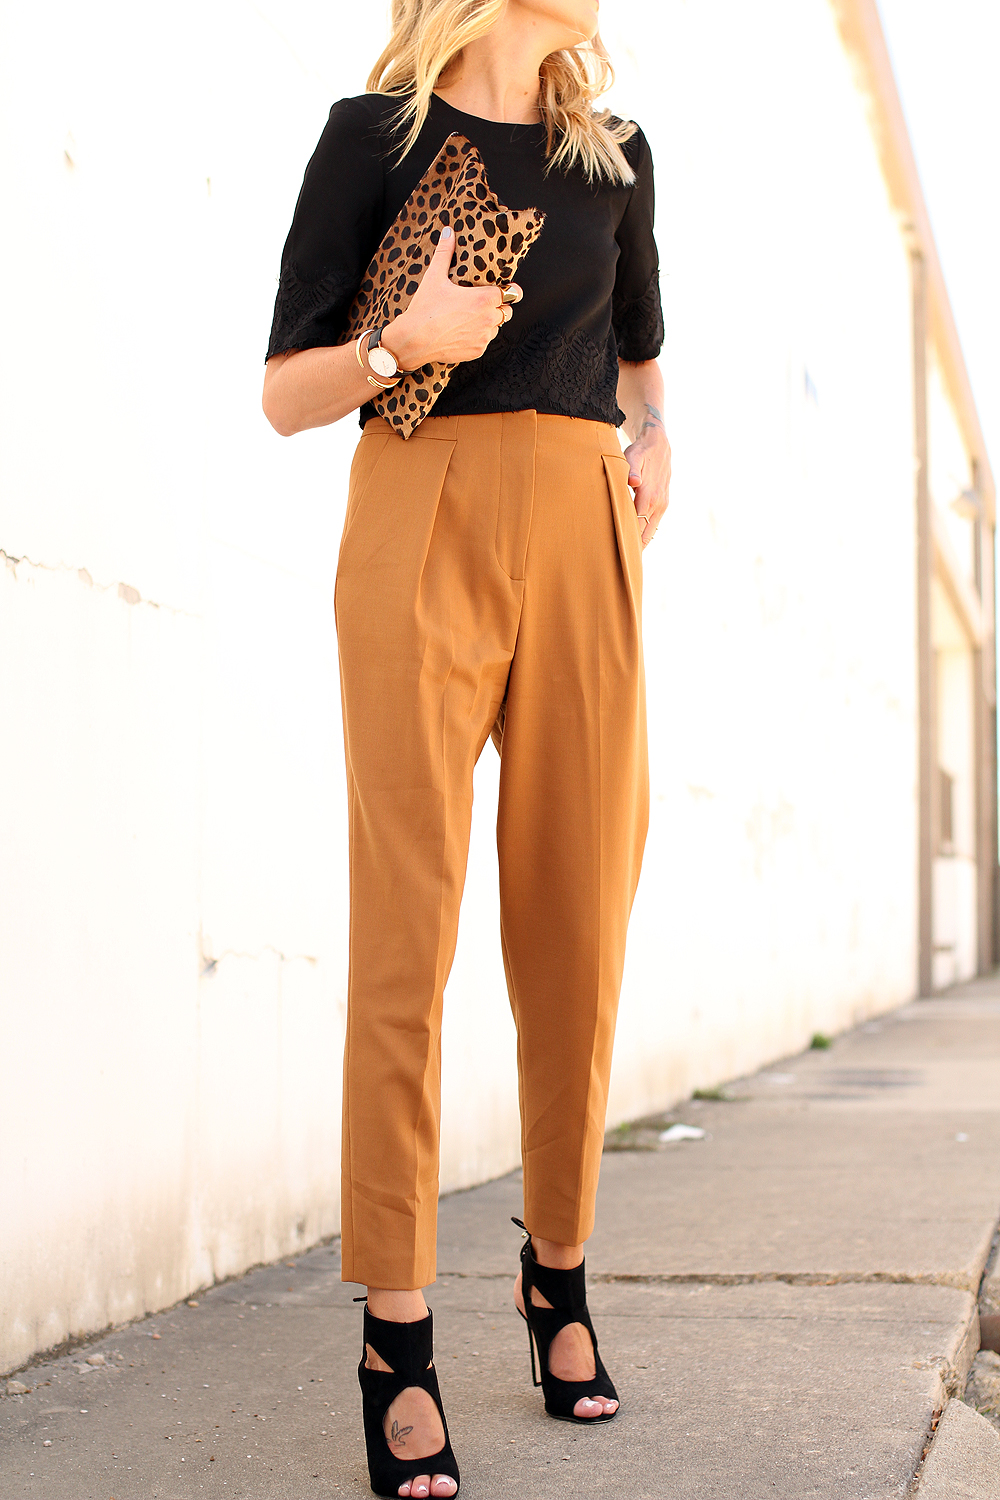 fashion-jackson-french-connection-trousers-french-connection-lace-crop-top-aquazzura-sexy-thing-similar-heels-clare-v-leopard-clutch-daniel-wellington-watch